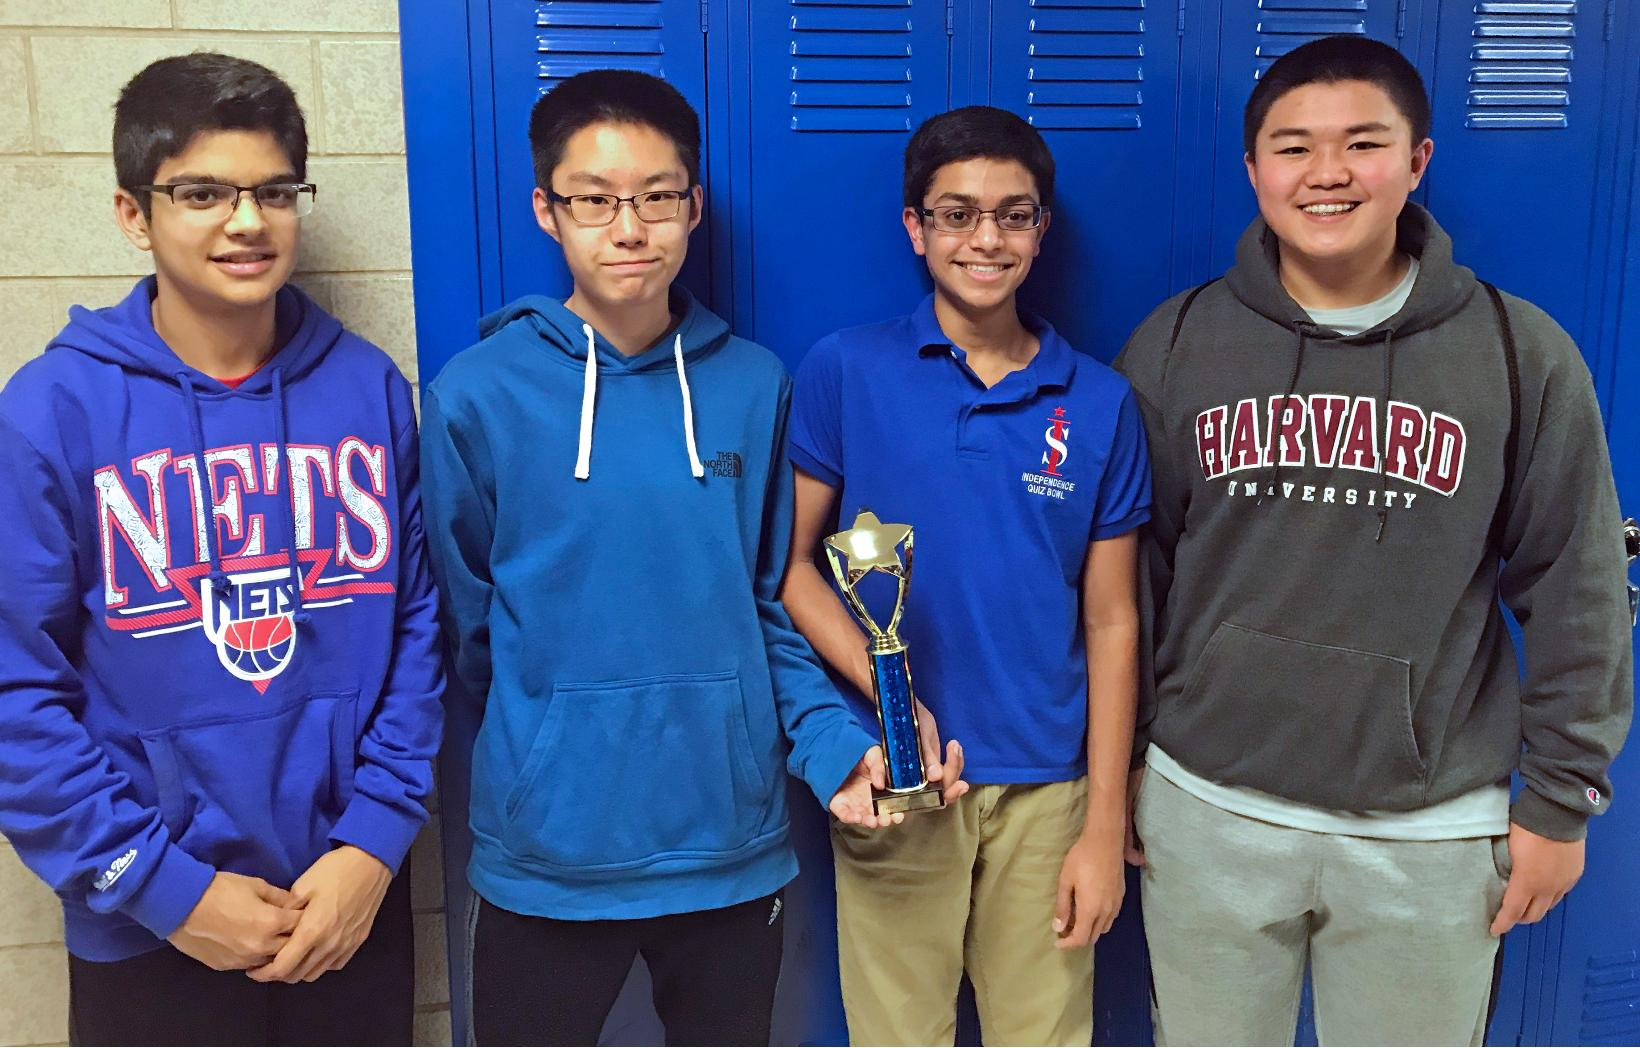 EIGHTH-GRADE QUIZ BOWLERS HEADED TO NATIONALS